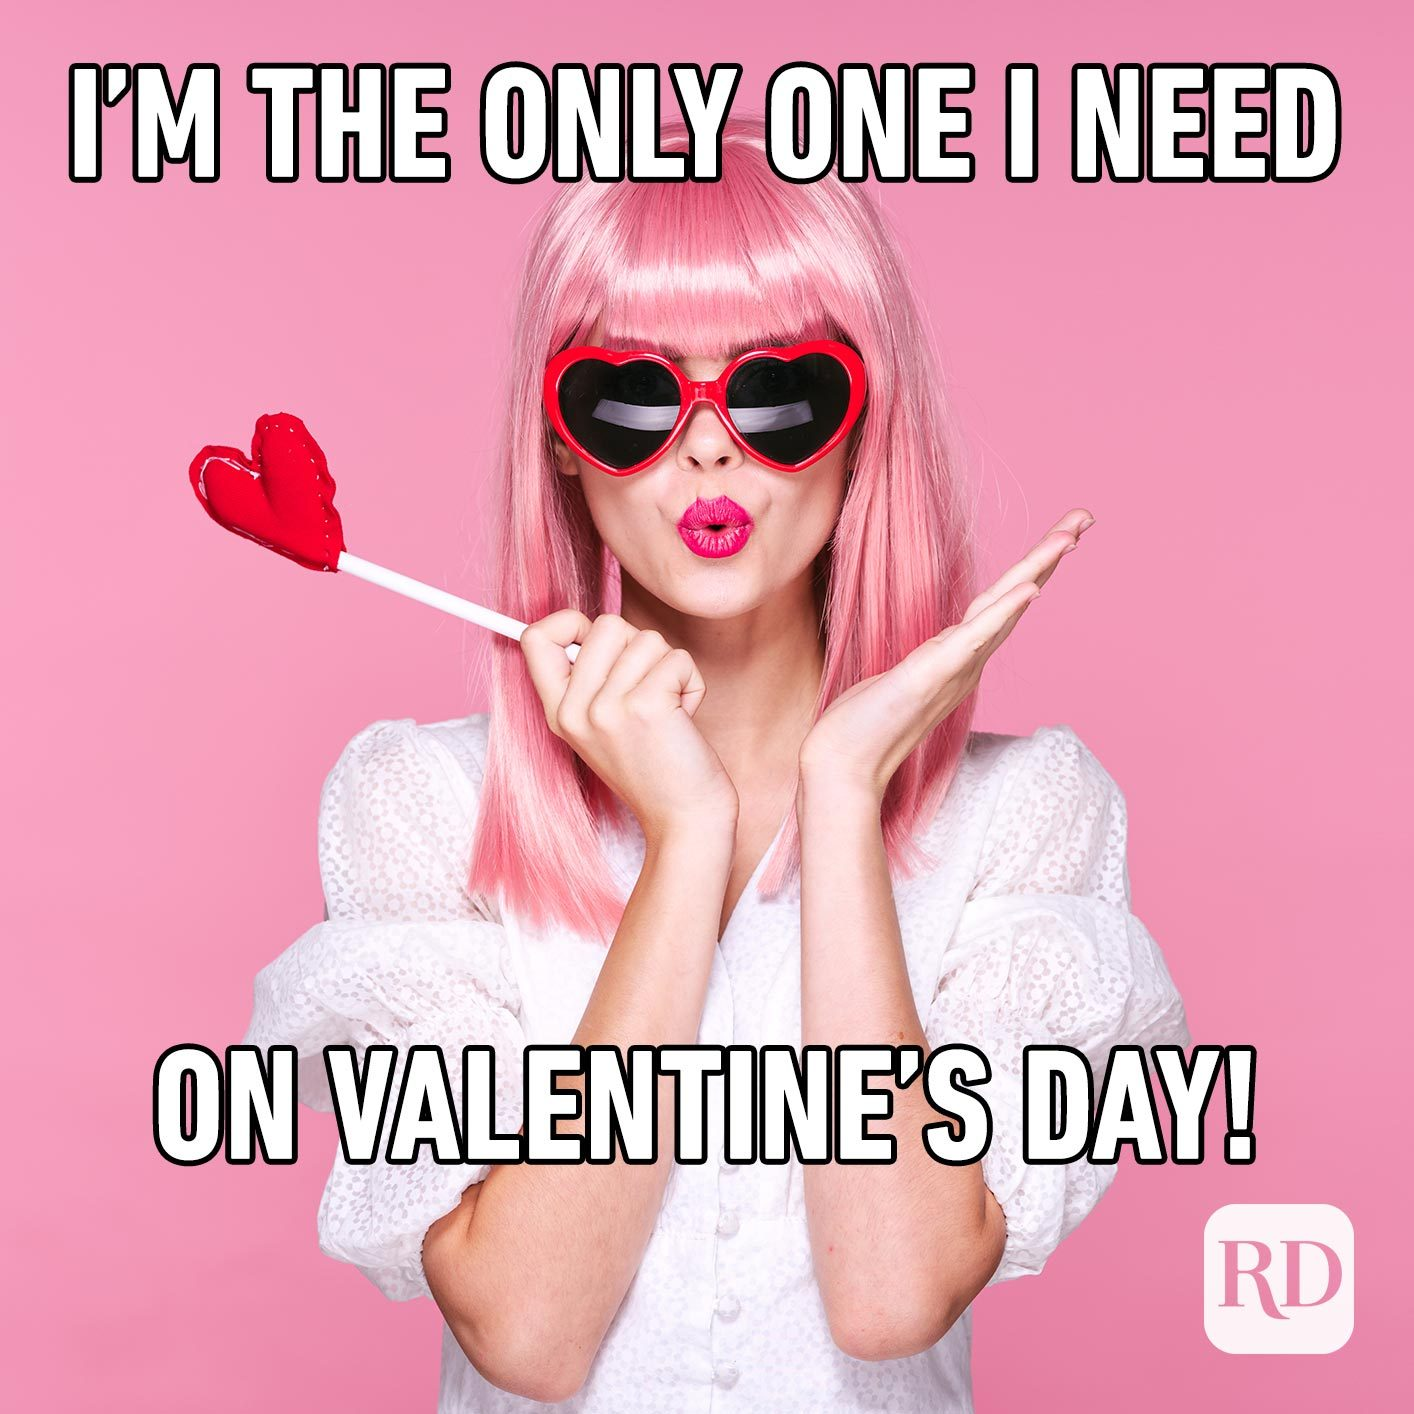 Woman in pink wig with heart-shaped sunglasses. Meme text: I'm the only one I need on Valentine's day.